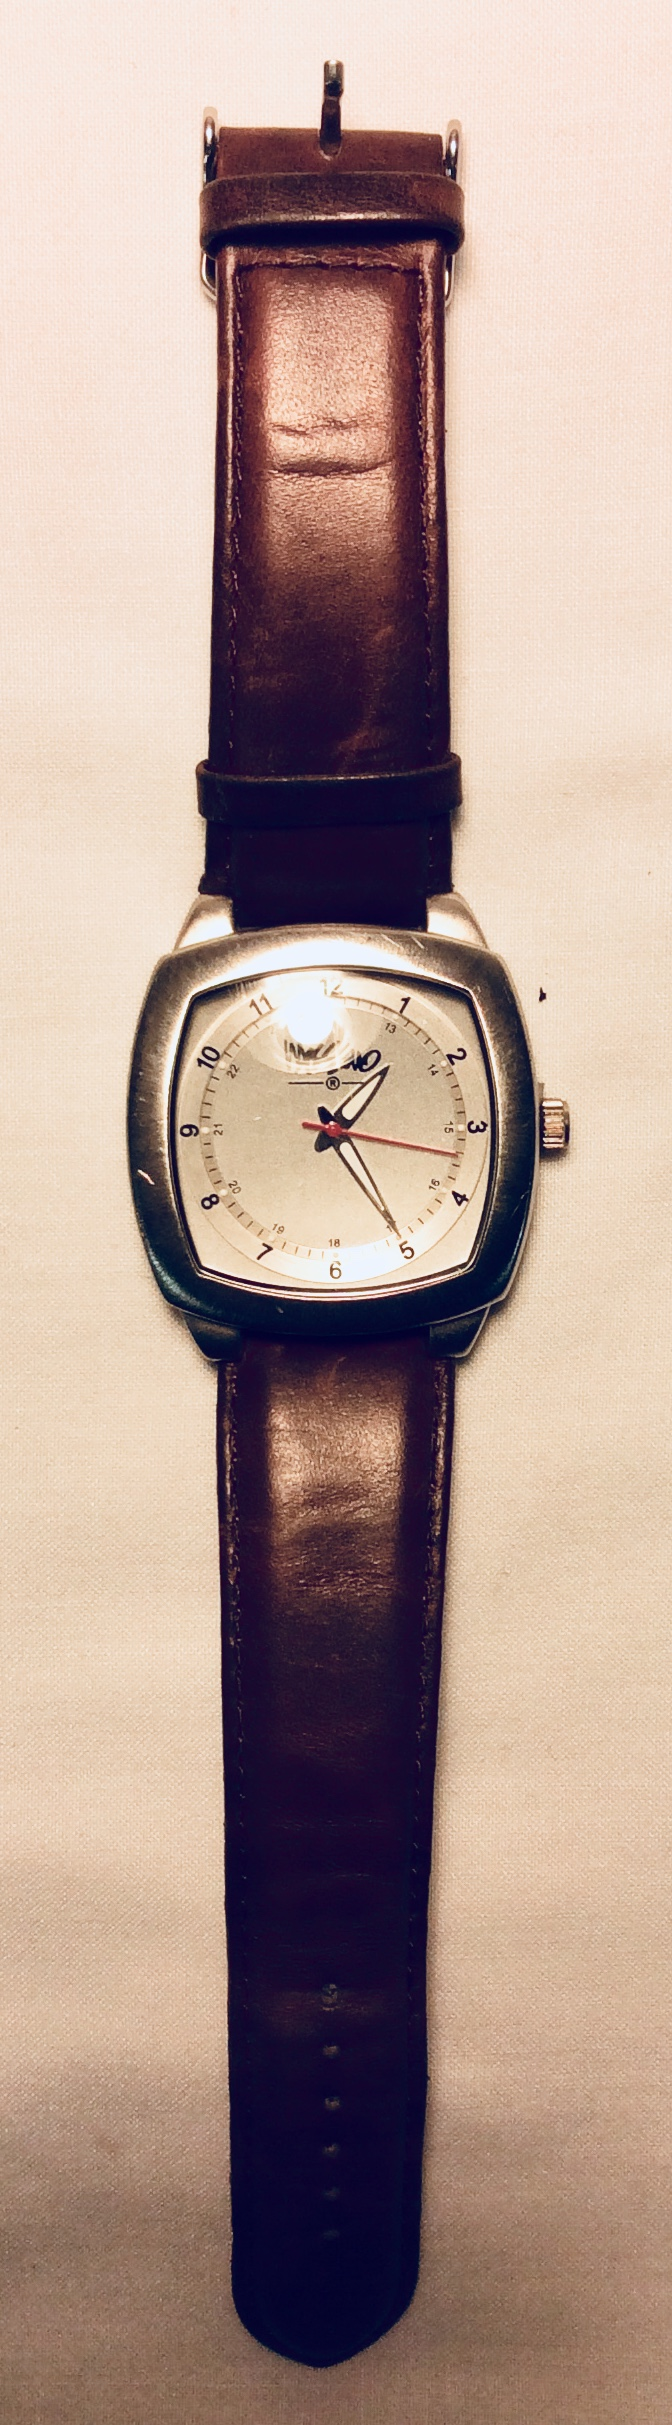 Steel with red second hand watch